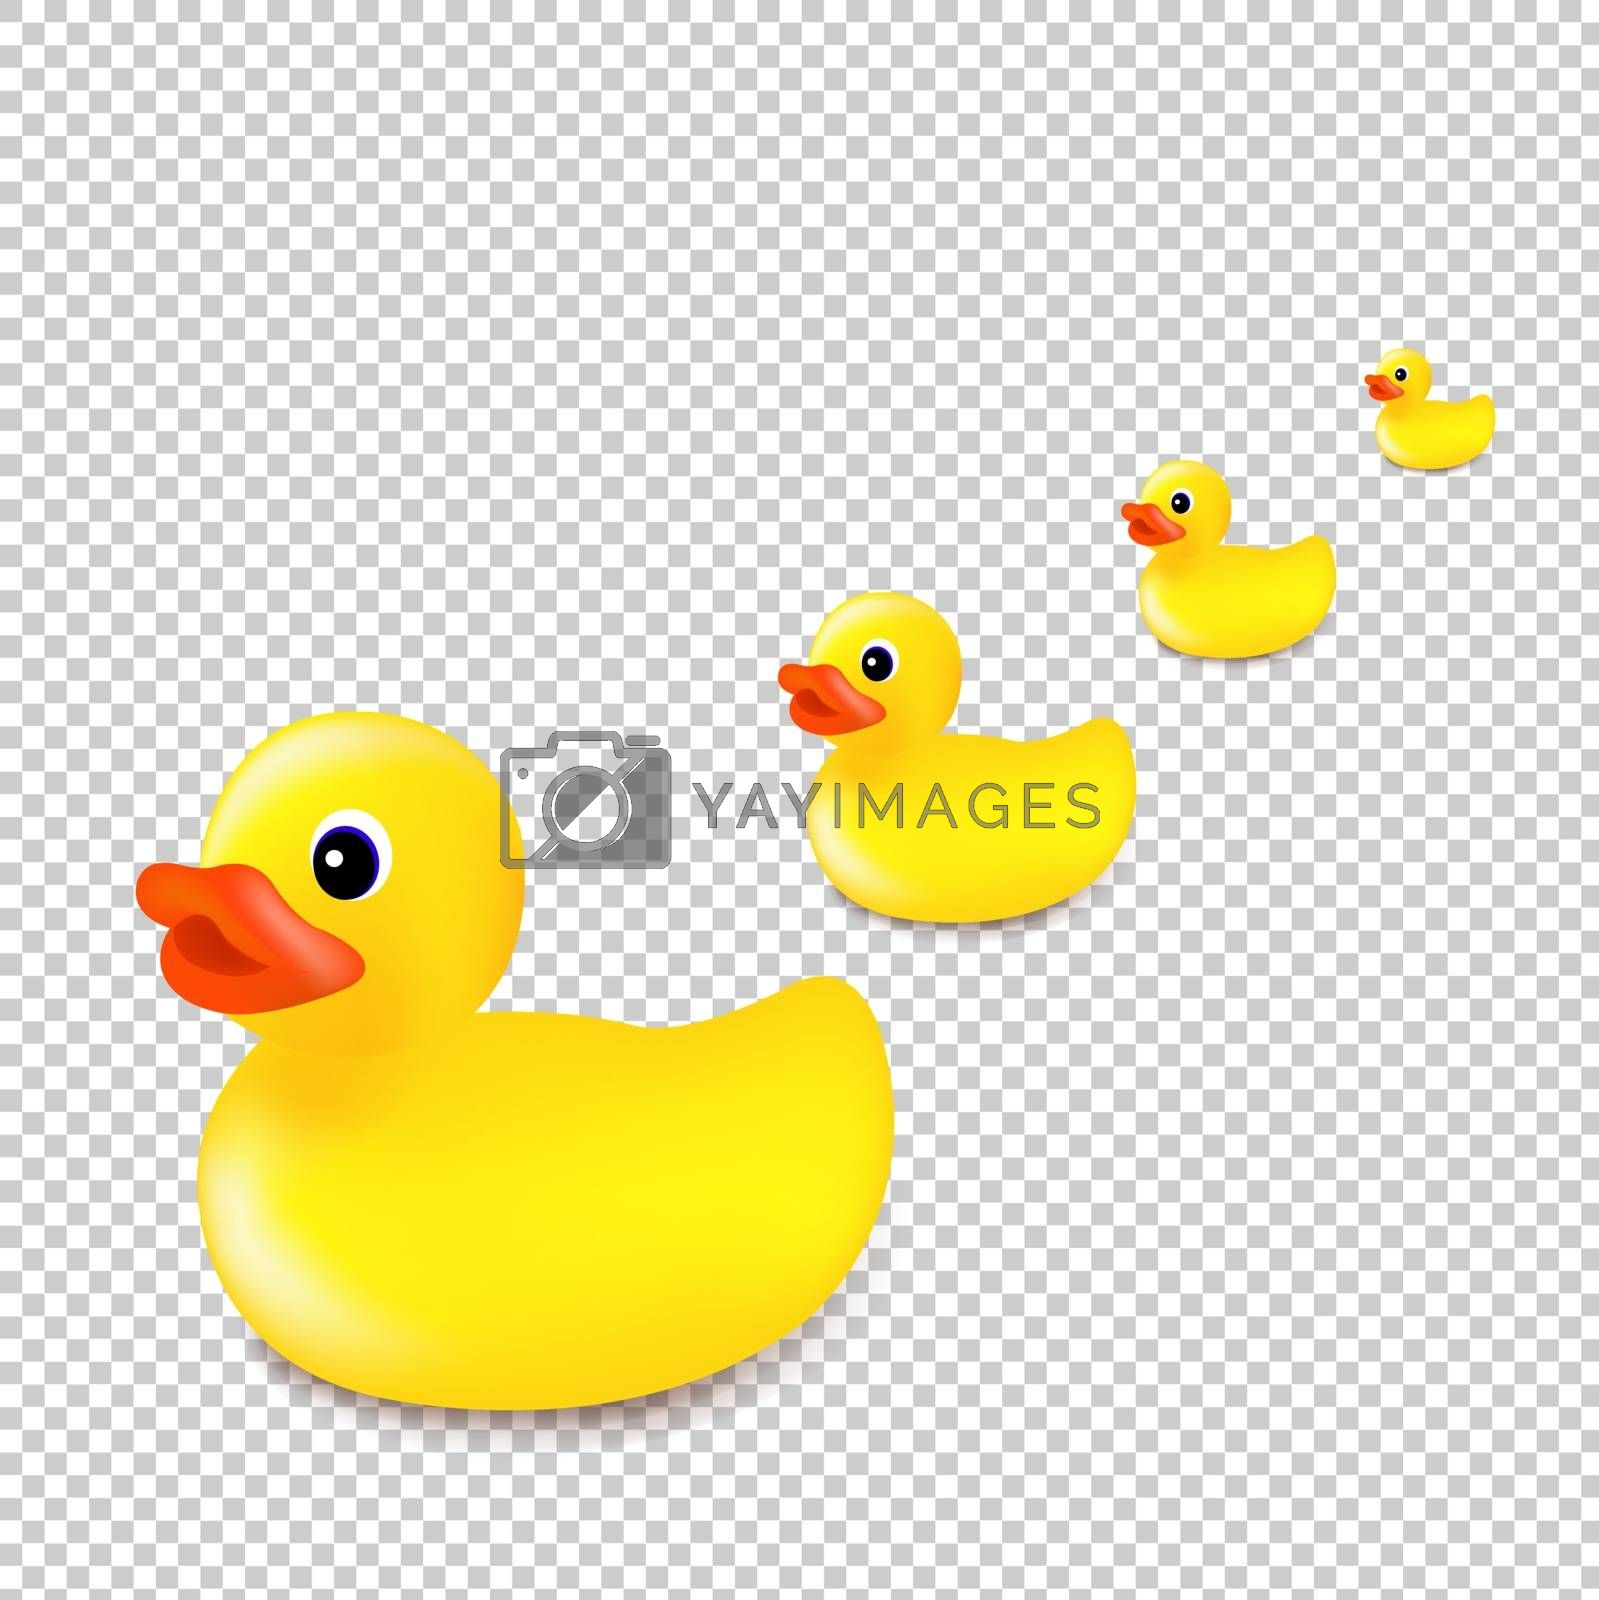 Rubber Ducks Isolated Transparent Background With Gradient Mesh, Vector Illustration